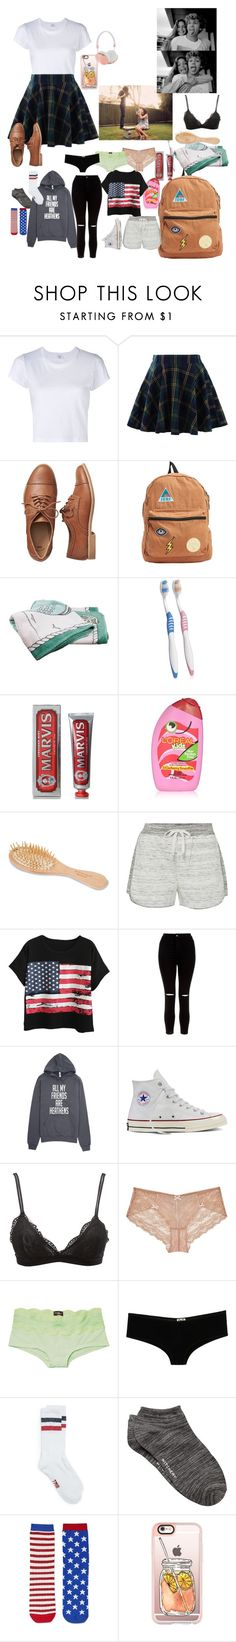 """""""visiting friend for the weekend"""" by lifeisnotwonderland ❤ liked on Polyvore featuring RE/DONE, Chicwish, Gap, Billabong, Hermès, Marvis, L'Oréal Paris, Urban Spa, Calvin Klein and Chicnova Fashion"""